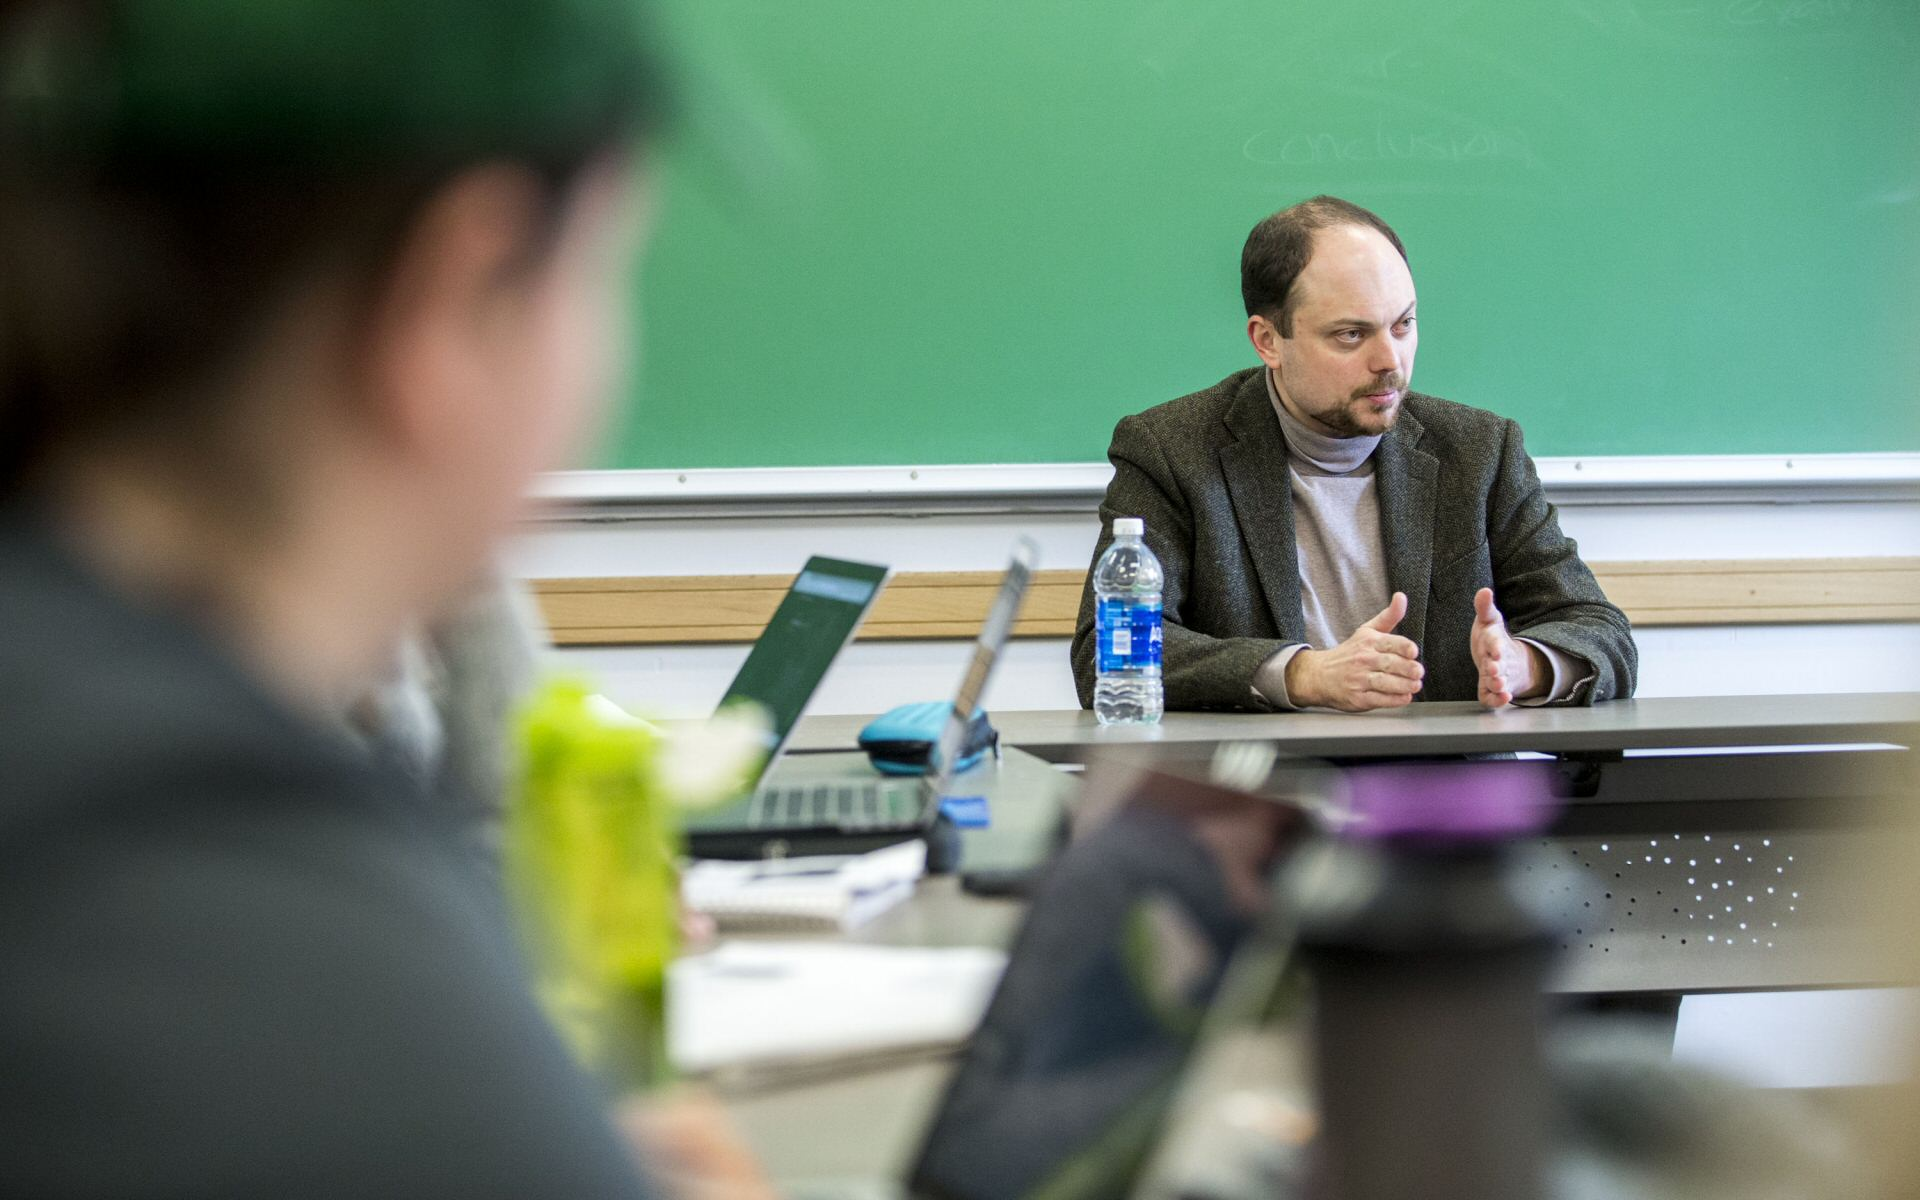 Russian documentarian-activitist talks to Skidmore students in a classroom